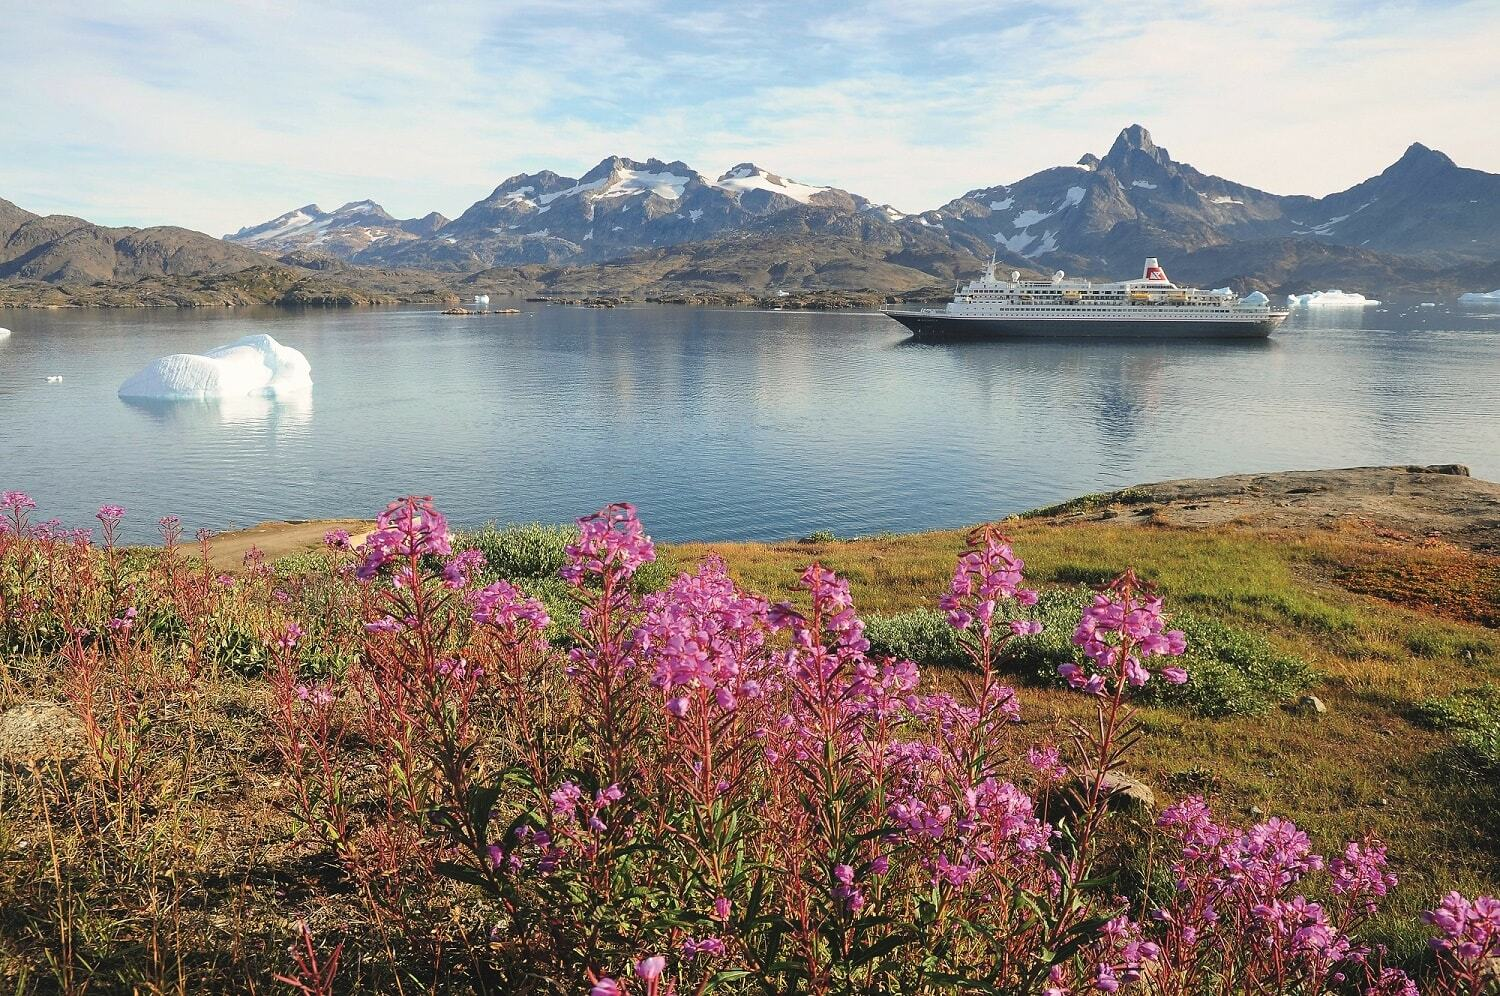 Set sail on Boudicca for beautiful Greenland in 2017 with Fred Olsen Cr min